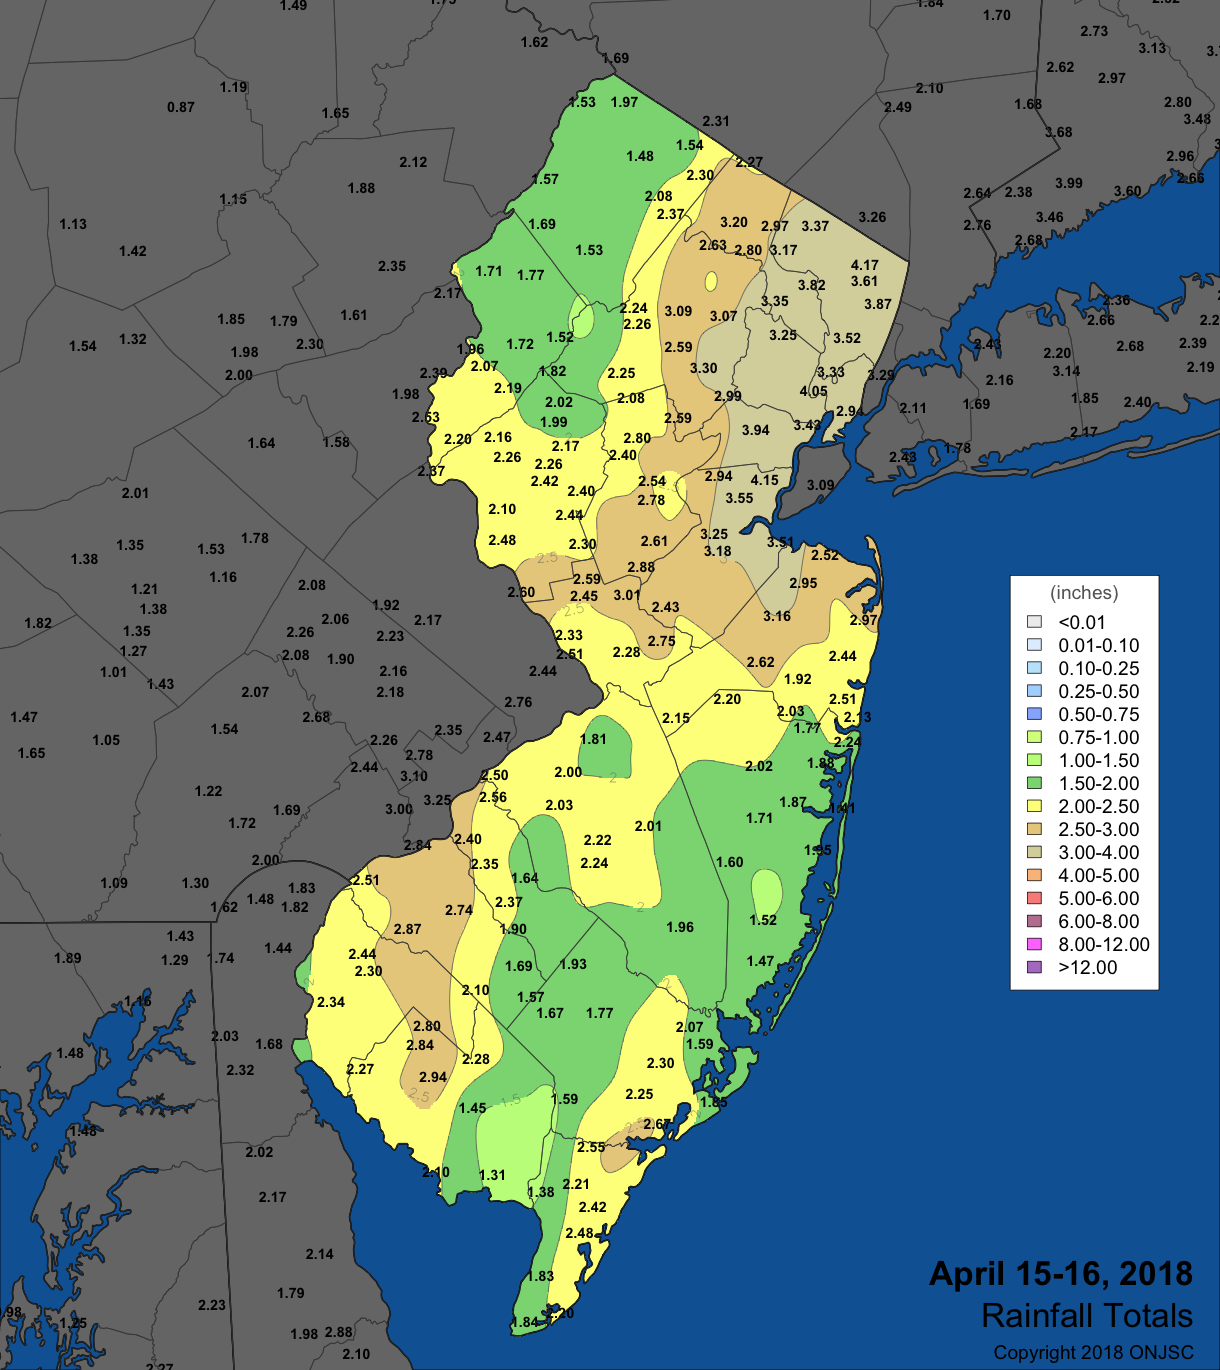 Rainfall map from April 15th-16th